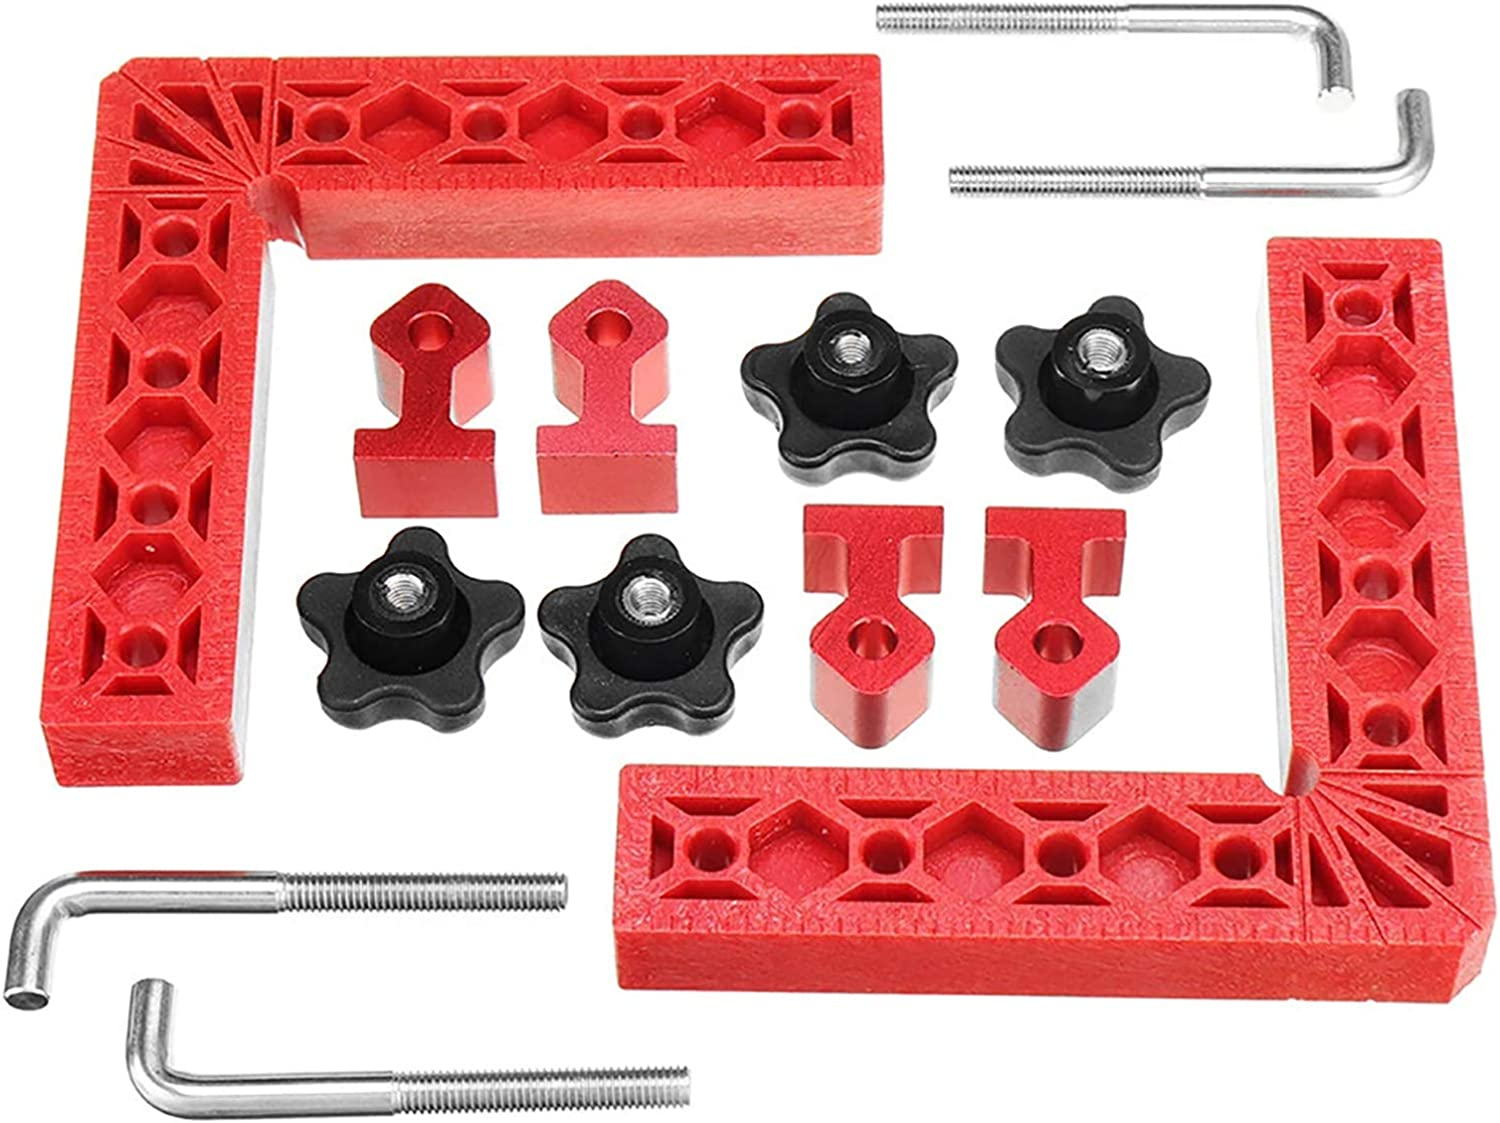 CALIDAKA 6inch Right Angle Clamps 90 Degree Positioning Squares,L-Type Corner Clamp,Woodworking Carpenter Clamping Tool for Picture Frames Boxes Cabinets Or Drawers 4 Clamps